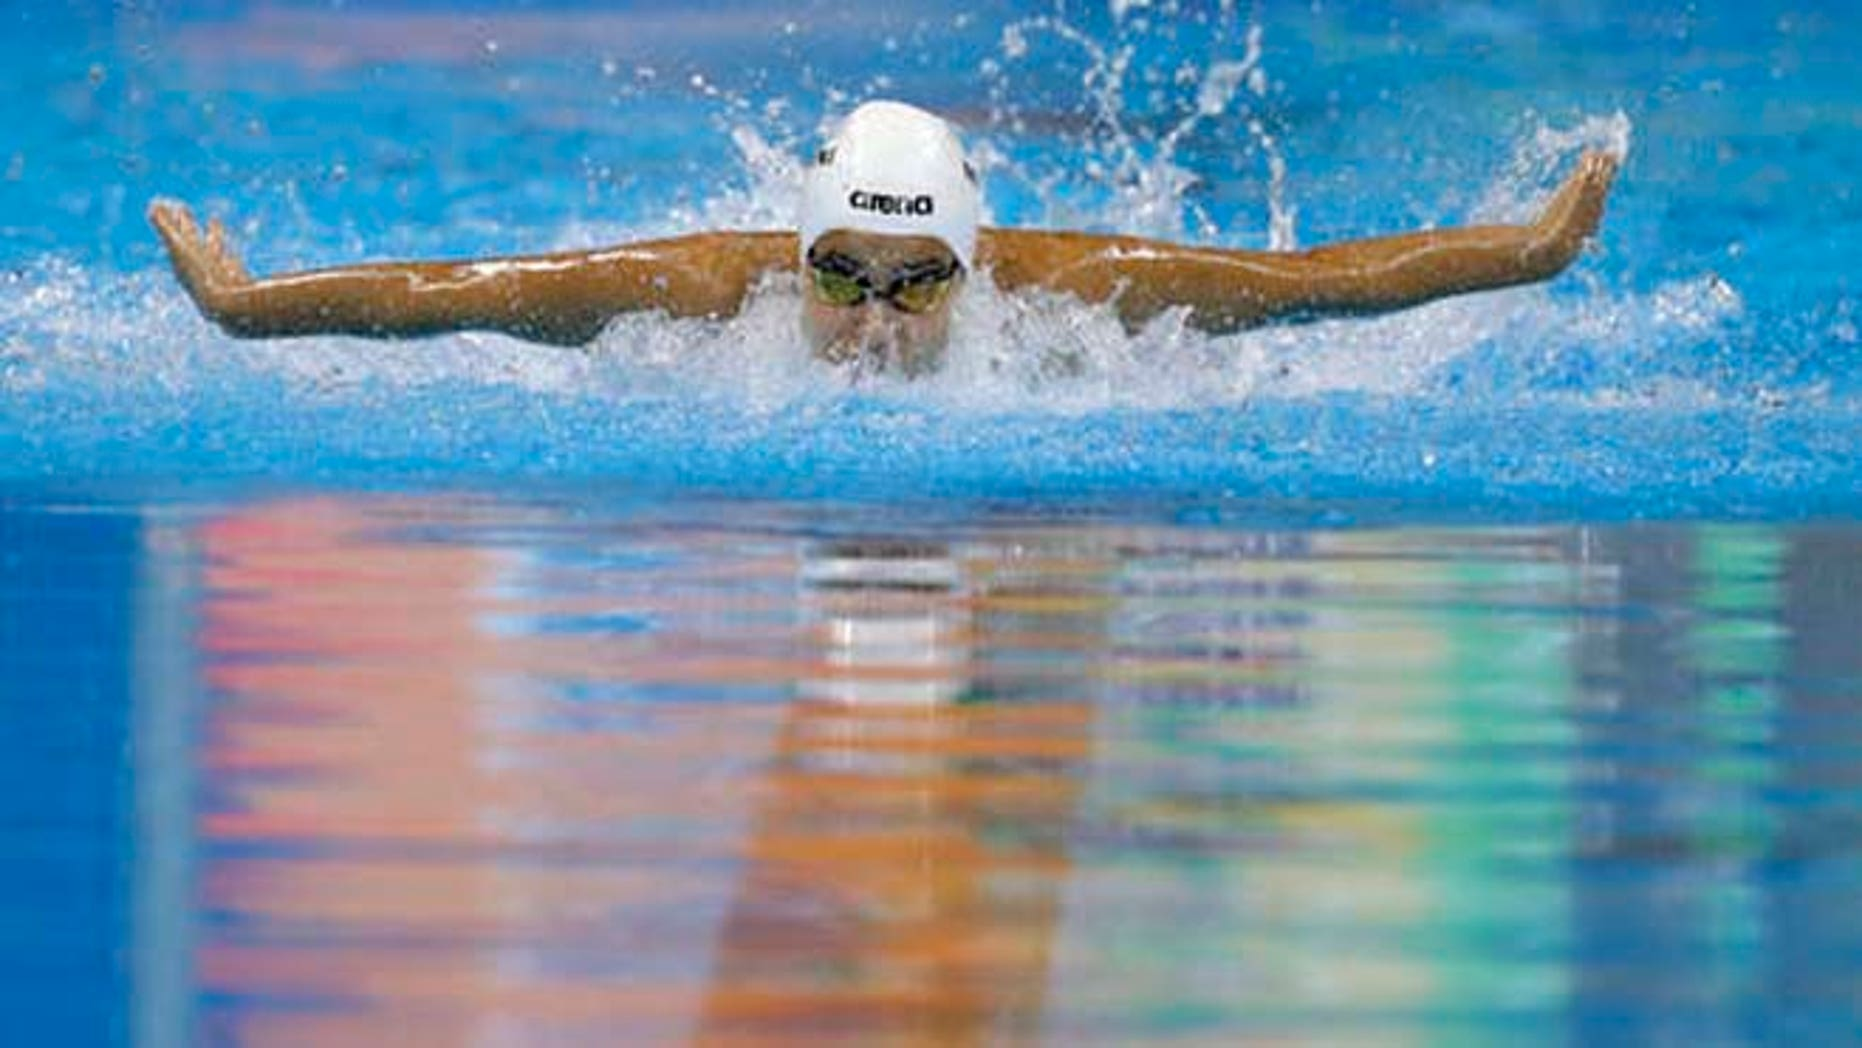 Yusra Mardini, swimming for the Refugee Olympic Team, competes in a women's 100m butterfly heat during the swimming competitions at the 2016 Summer Olympics, Saturday.